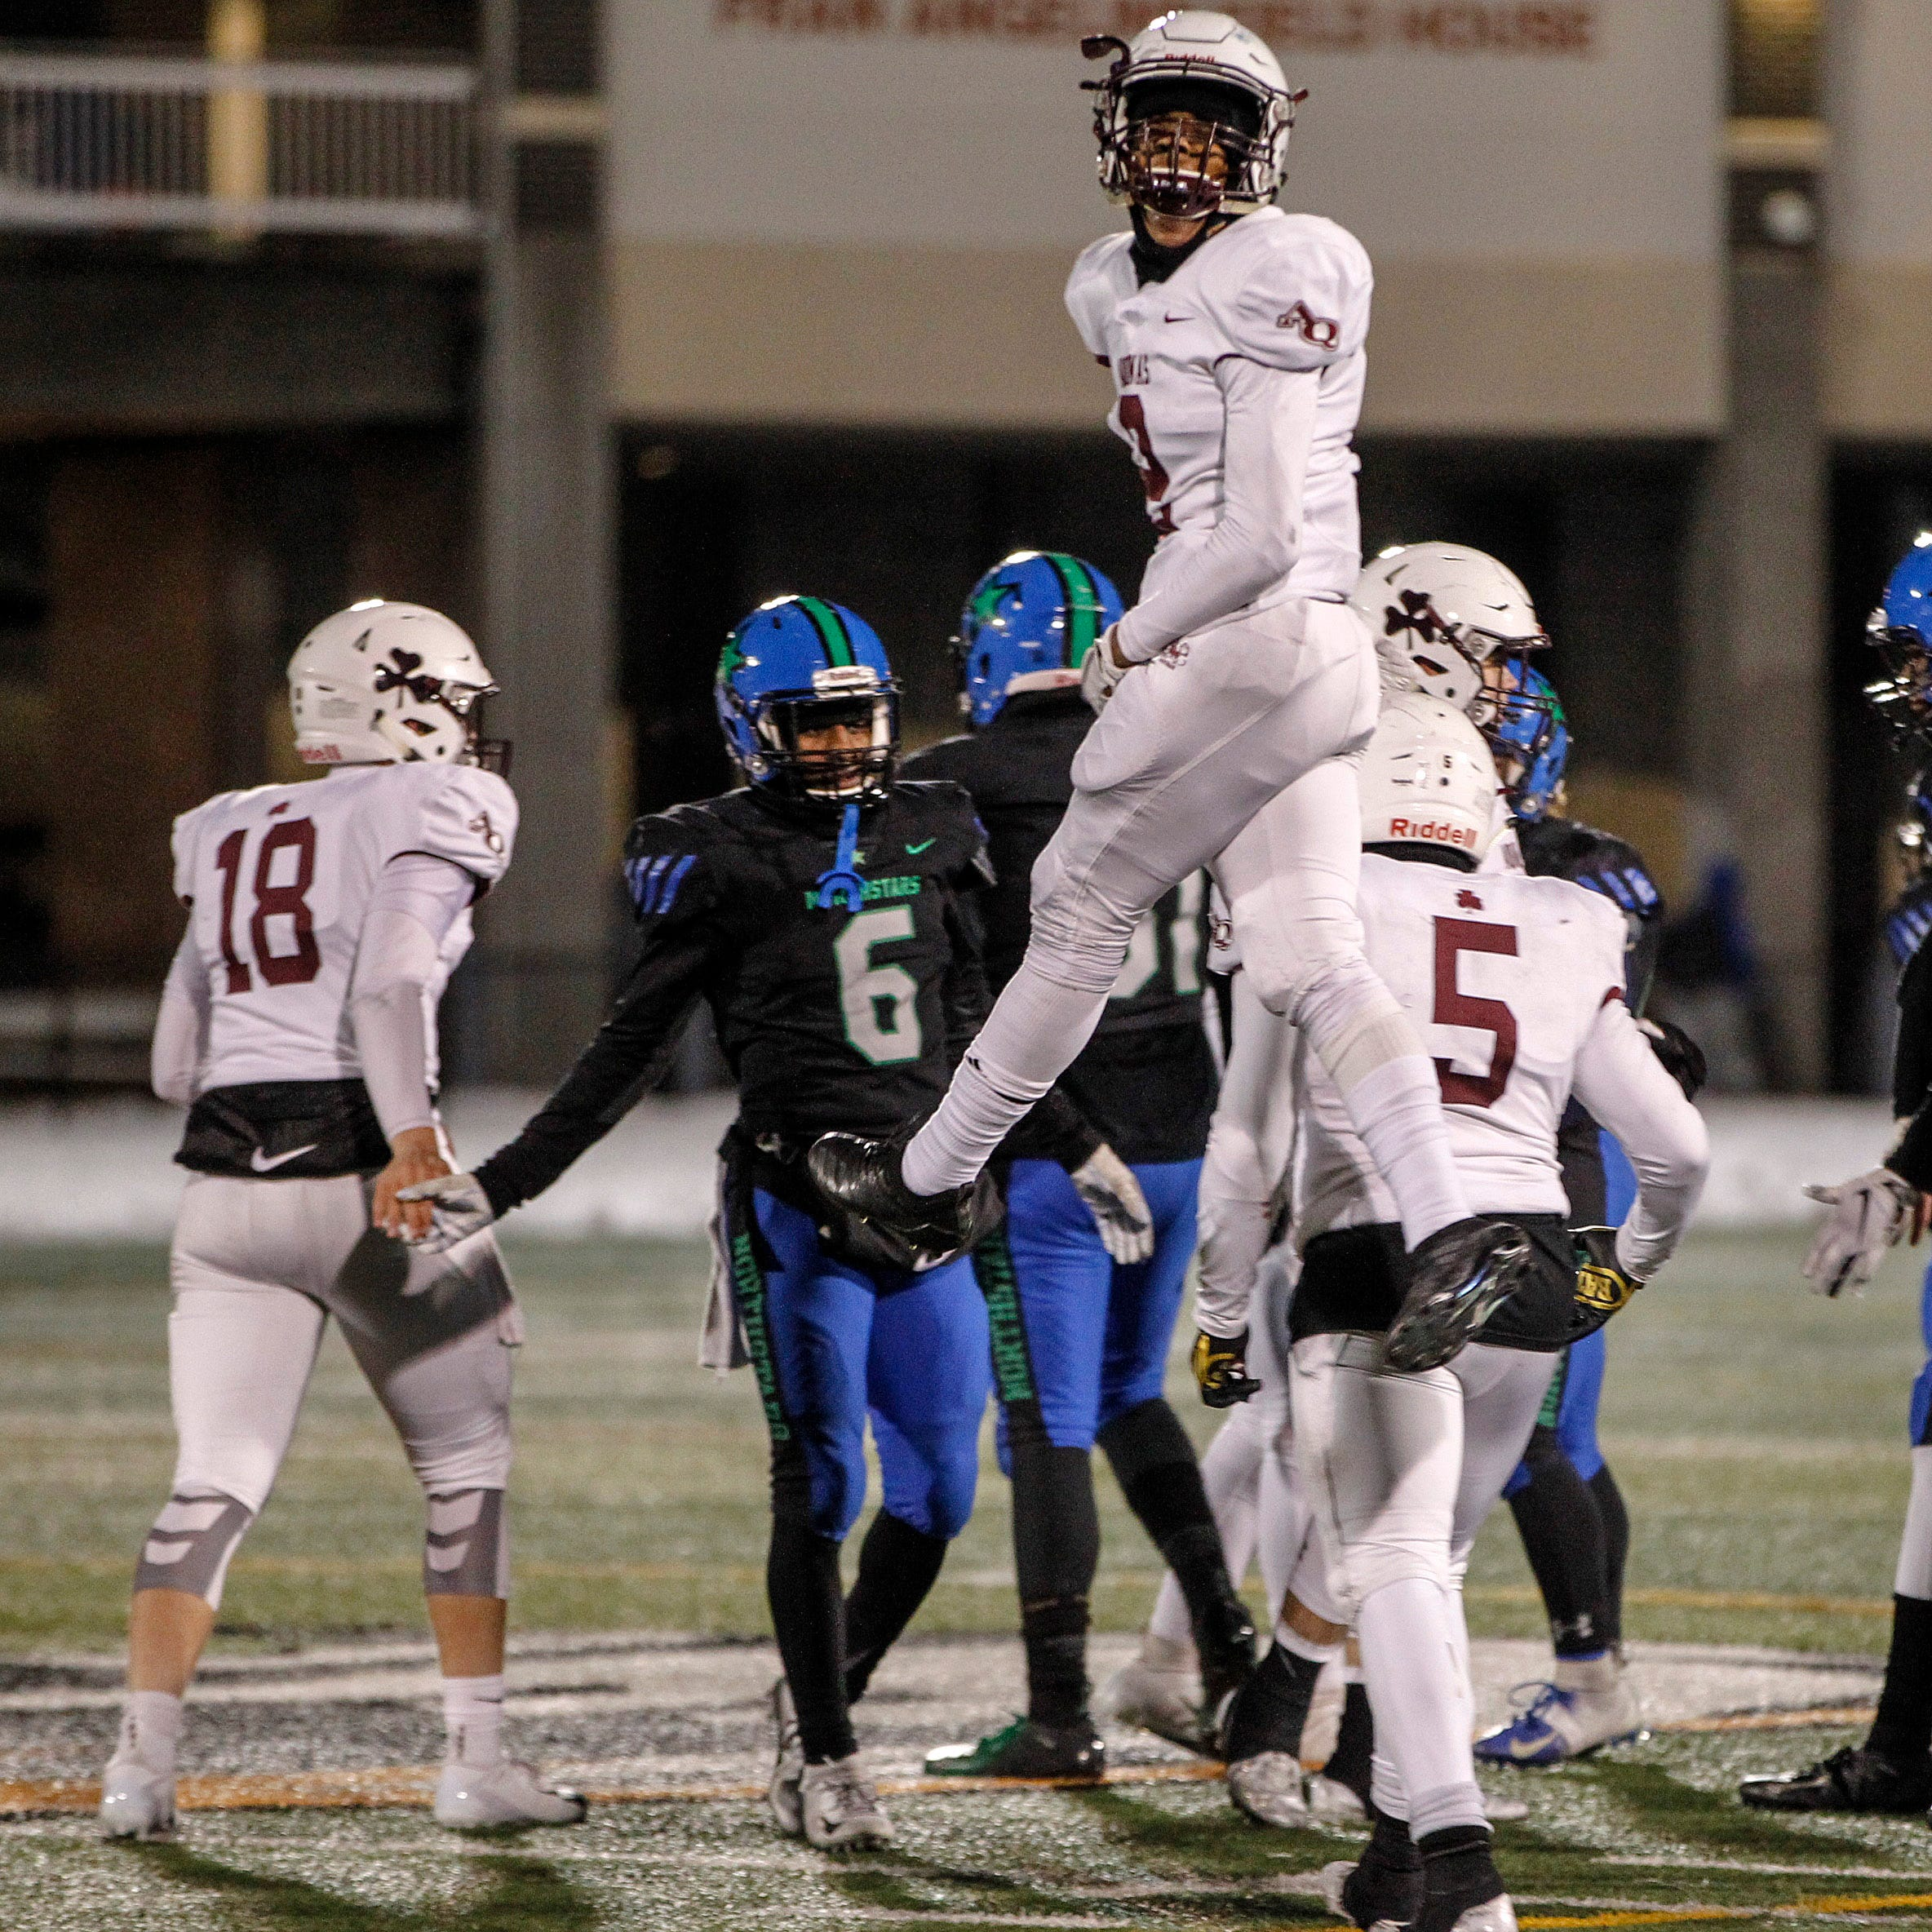 Aquinas' Kobe McNair jumps as he celebrates victory over Cicero-North at Union-Endicott High School during state semifinals. Saturday, November 17, 2018.